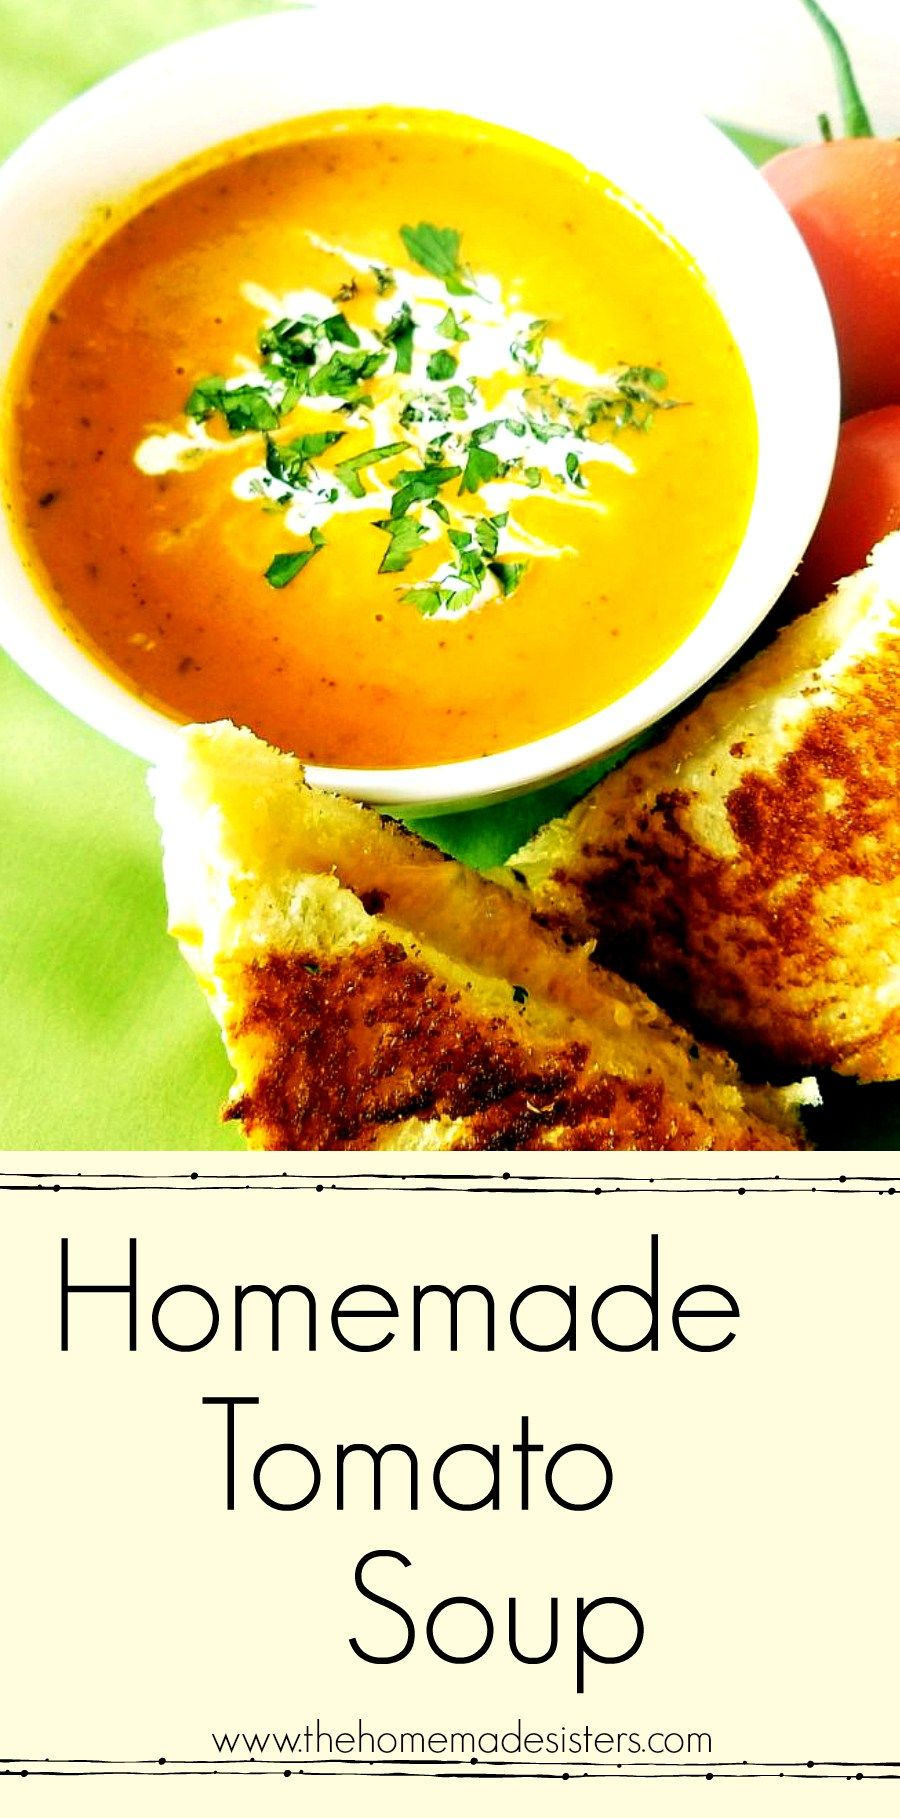 Homemade tomato soup receta forumfinder Image collections